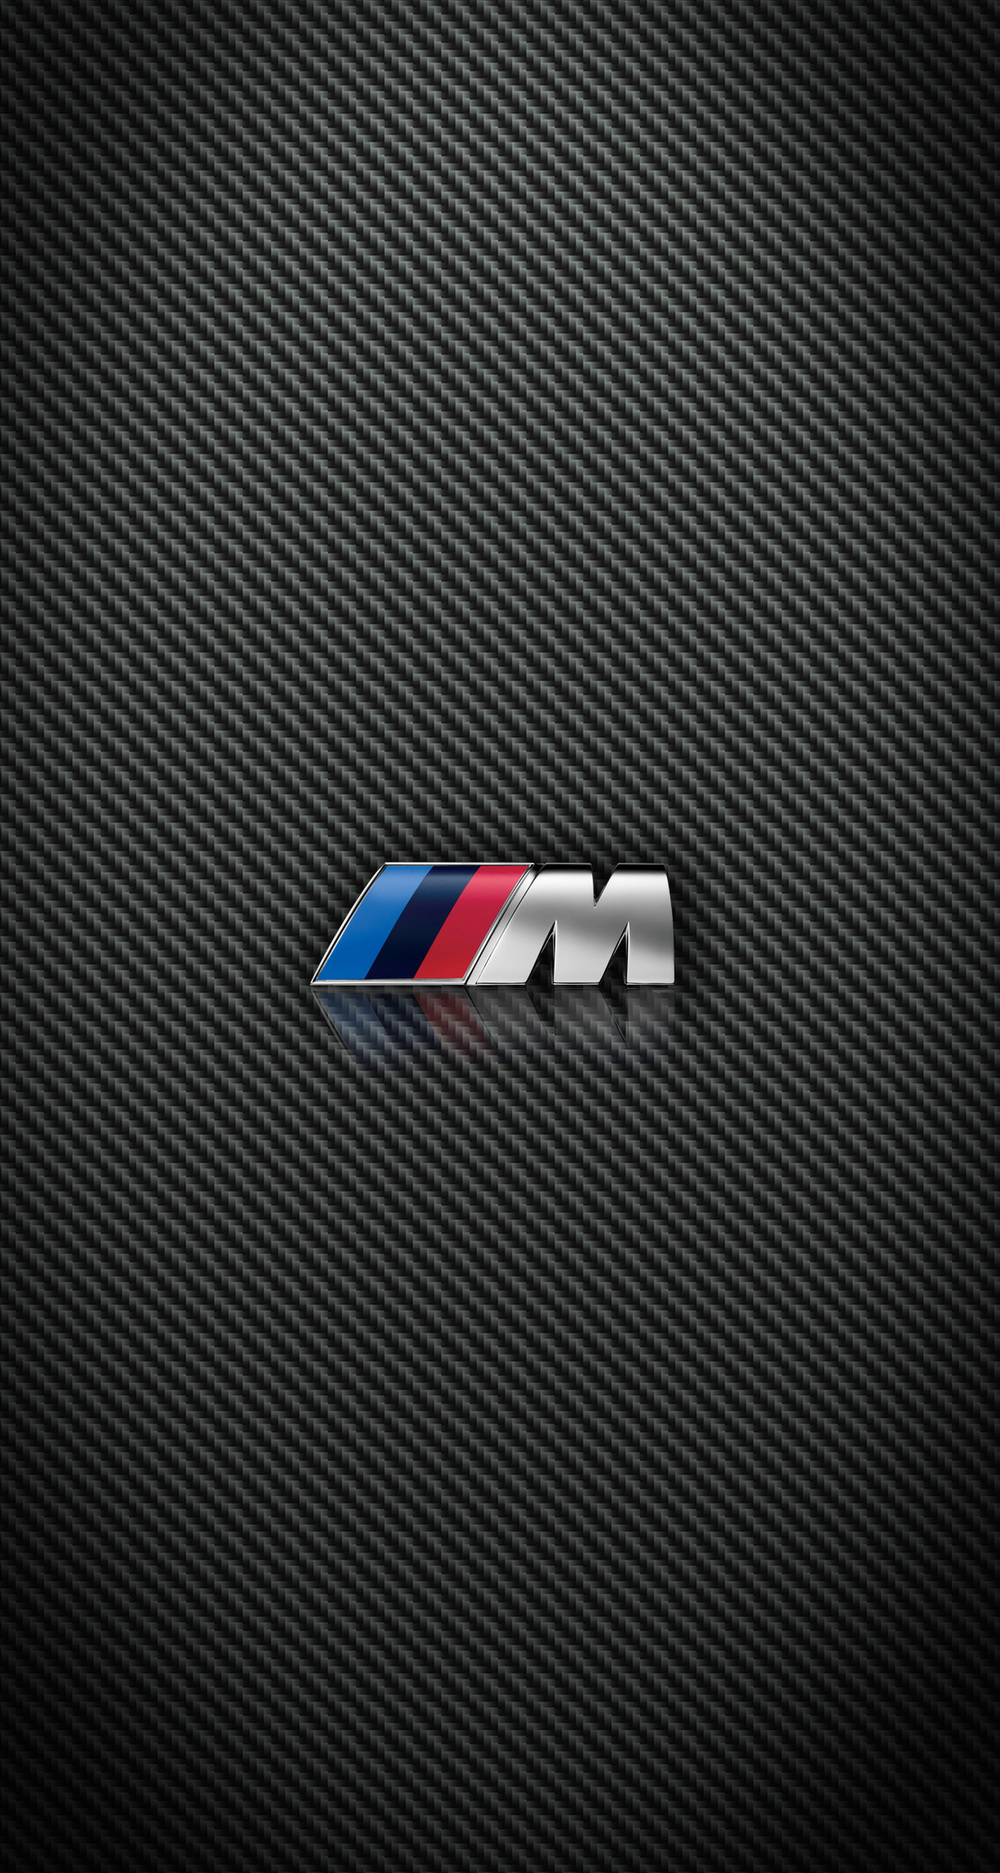 carbon fiber bmw and m power iphone wallpapers for iphone 6 plus parallax effect ken loh. Black Bedroom Furniture Sets. Home Design Ideas